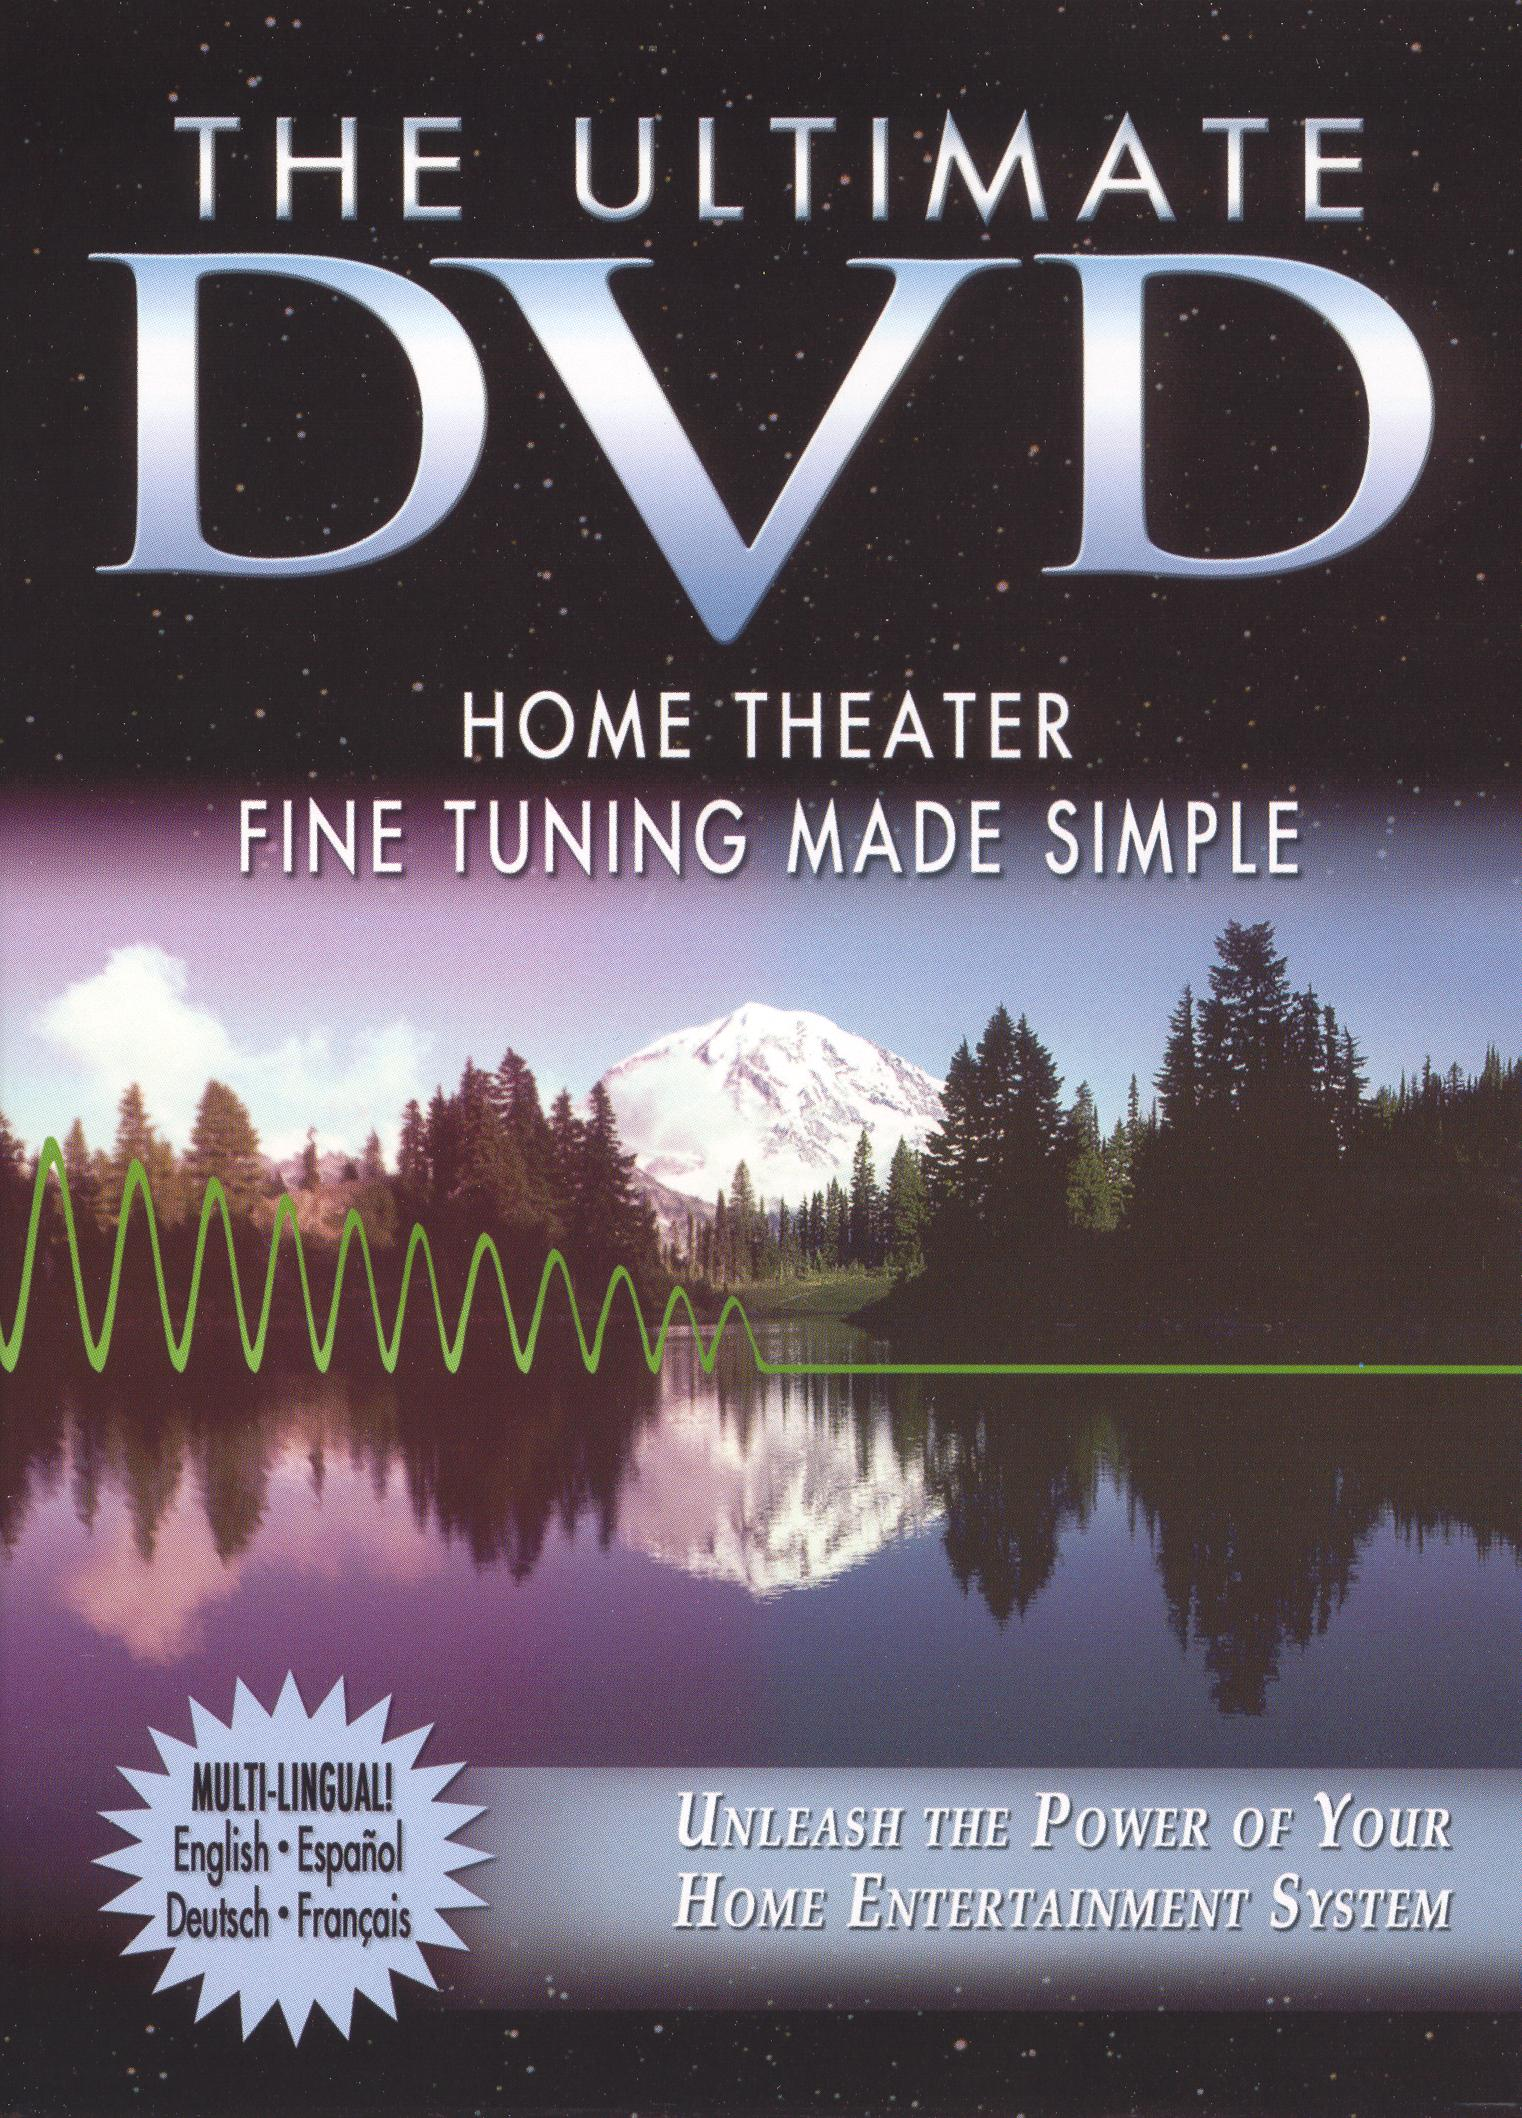 The Ultimate DVD: Home Theater Fine Tuning Made Simple